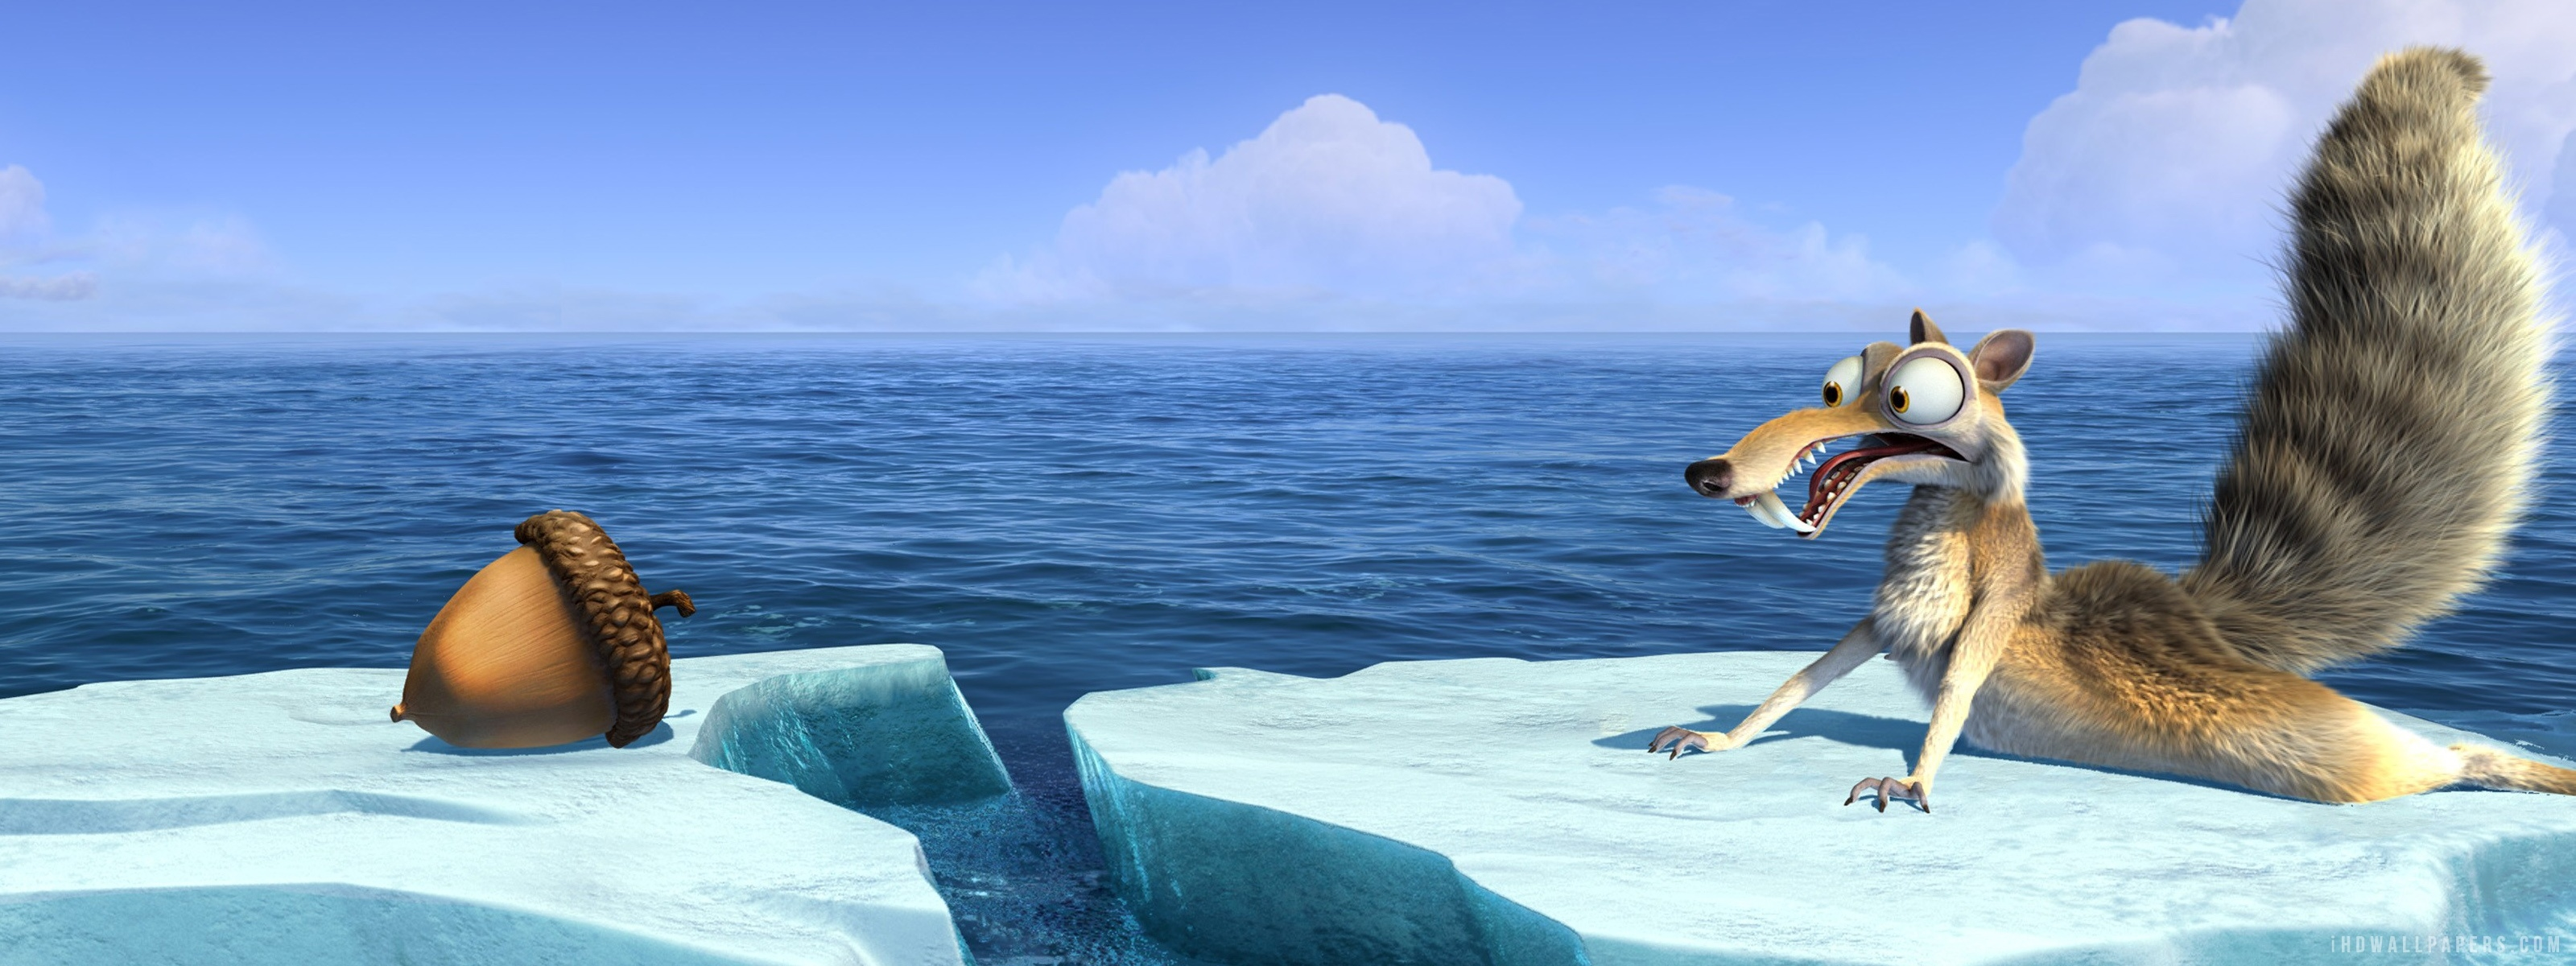 ice age wallpapers hd 1 2 3 4 wide wallpaper